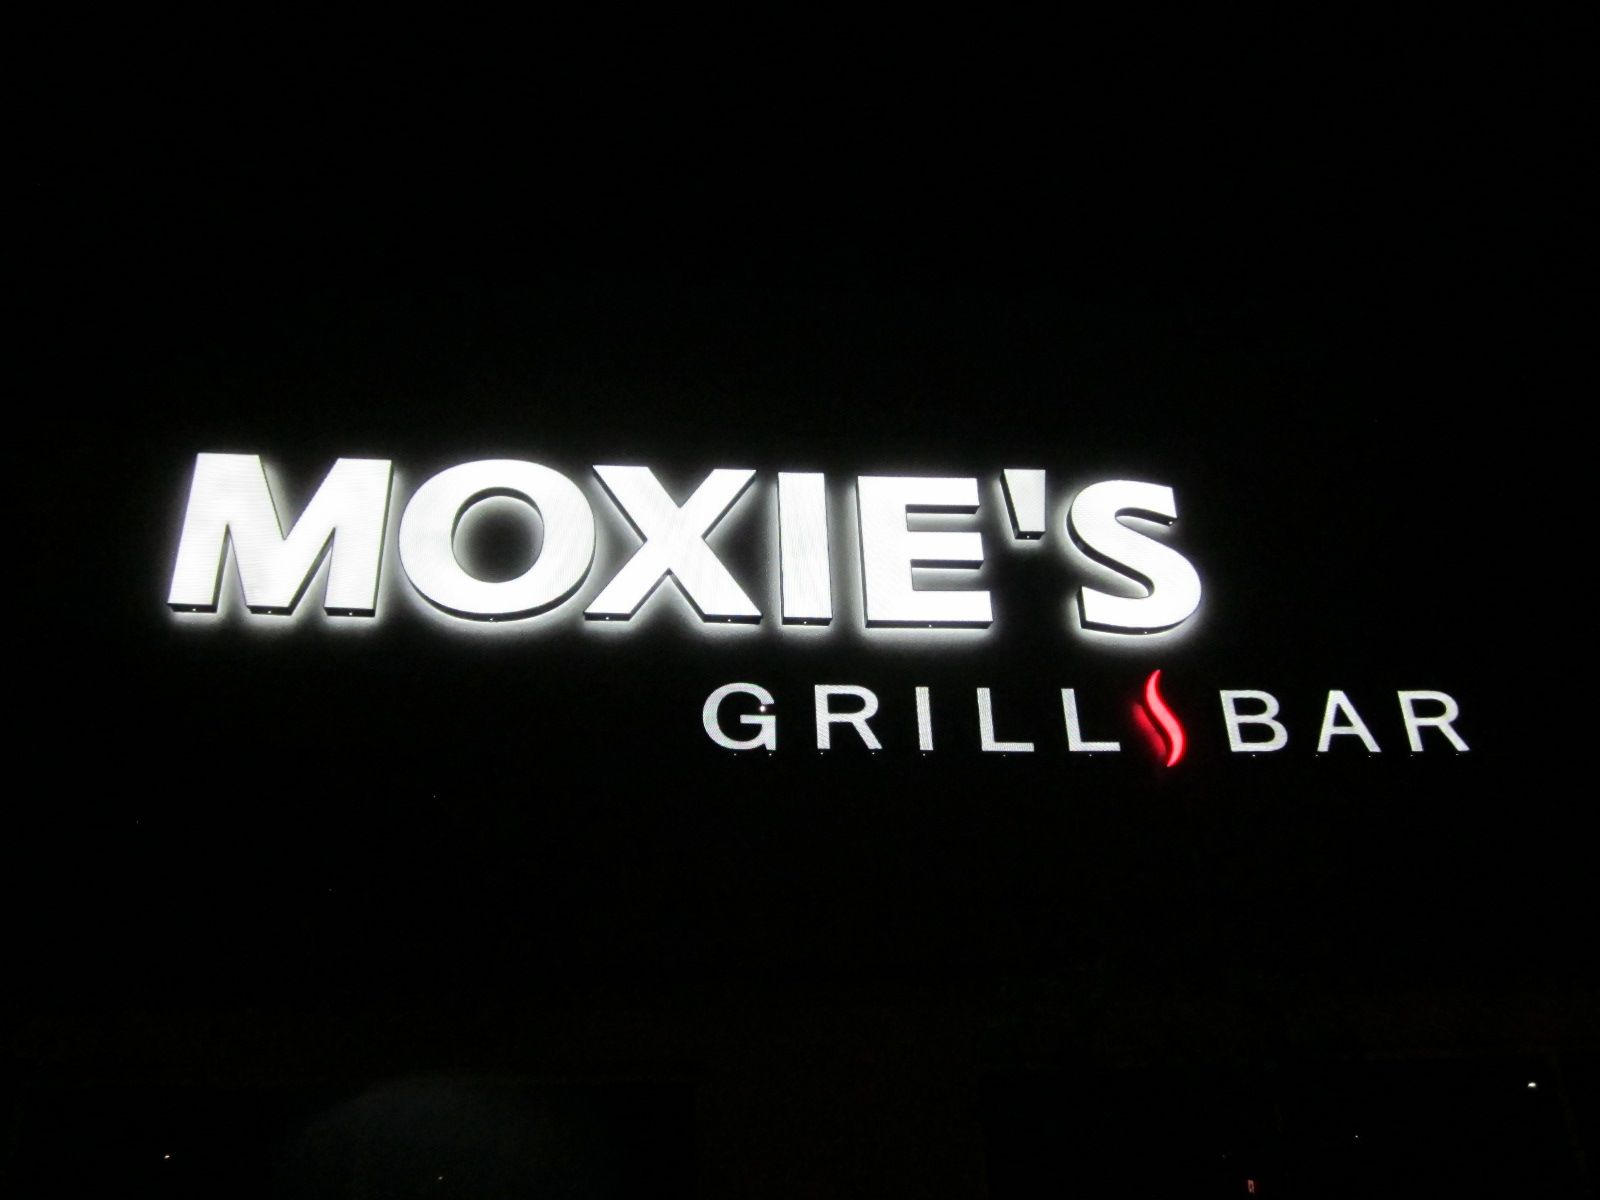 Moxie Here is a front/back lit channel letter set using